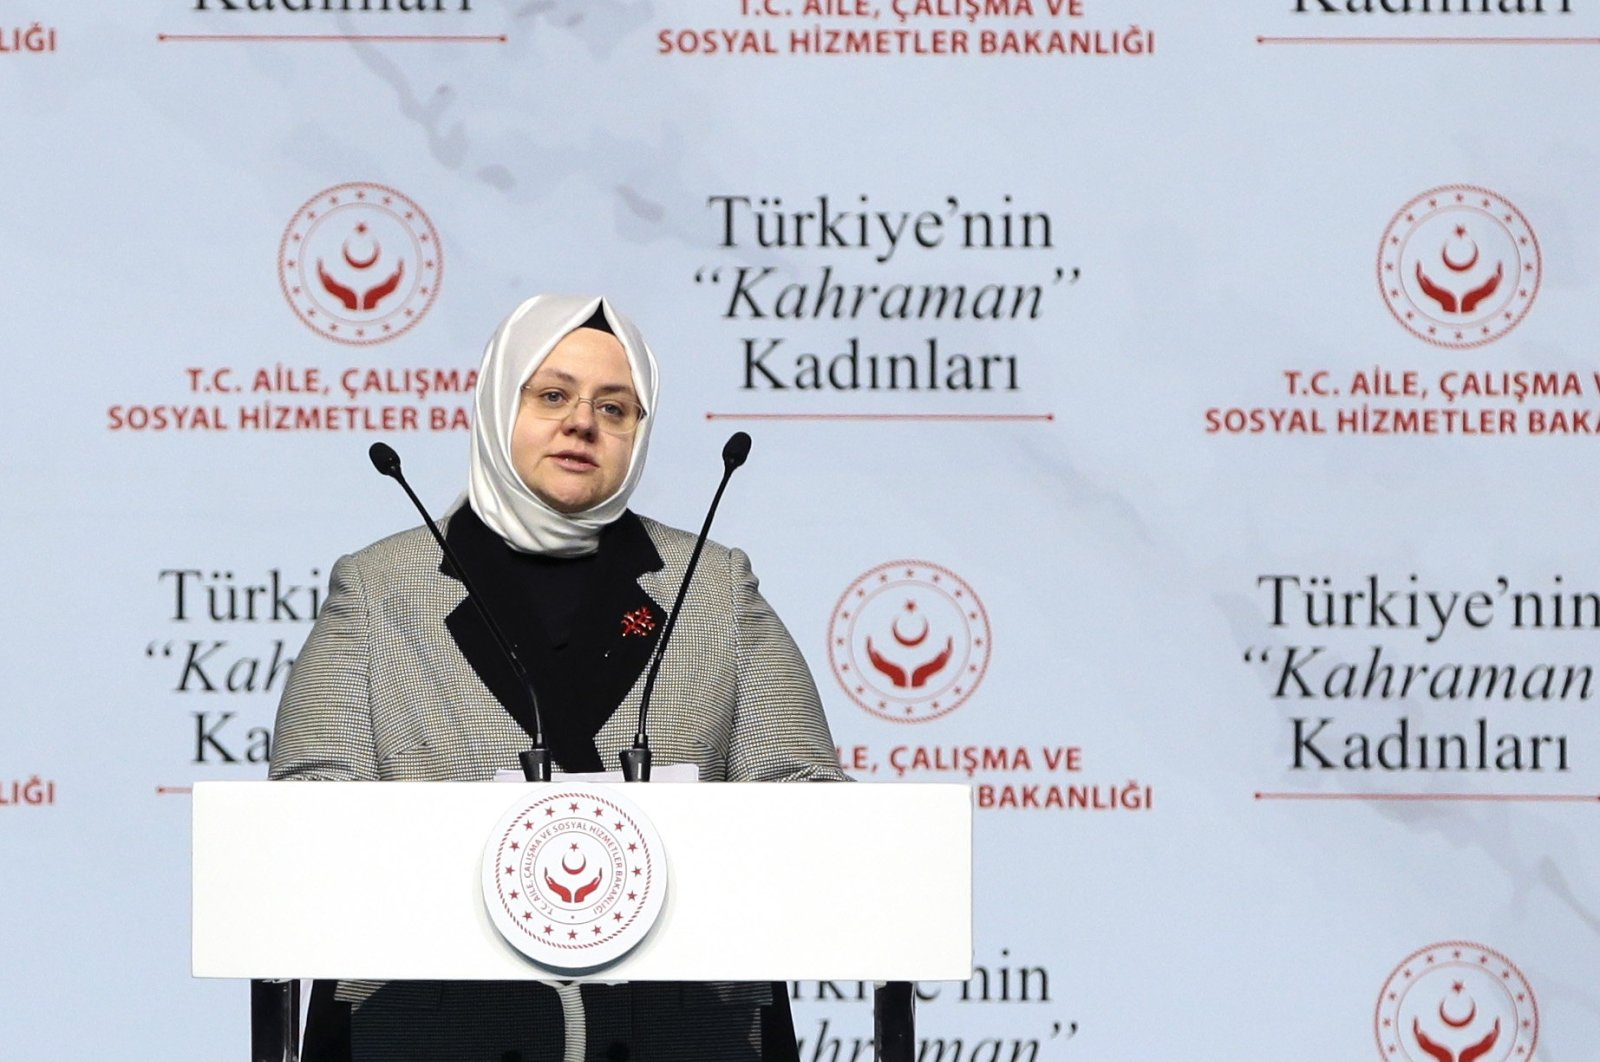 Minister of Family, Labor and Social Services Zehra Zümrüt Selçuk speaks at an event in Istanbul, Turkey, March 10, 2020. (AA Photo)